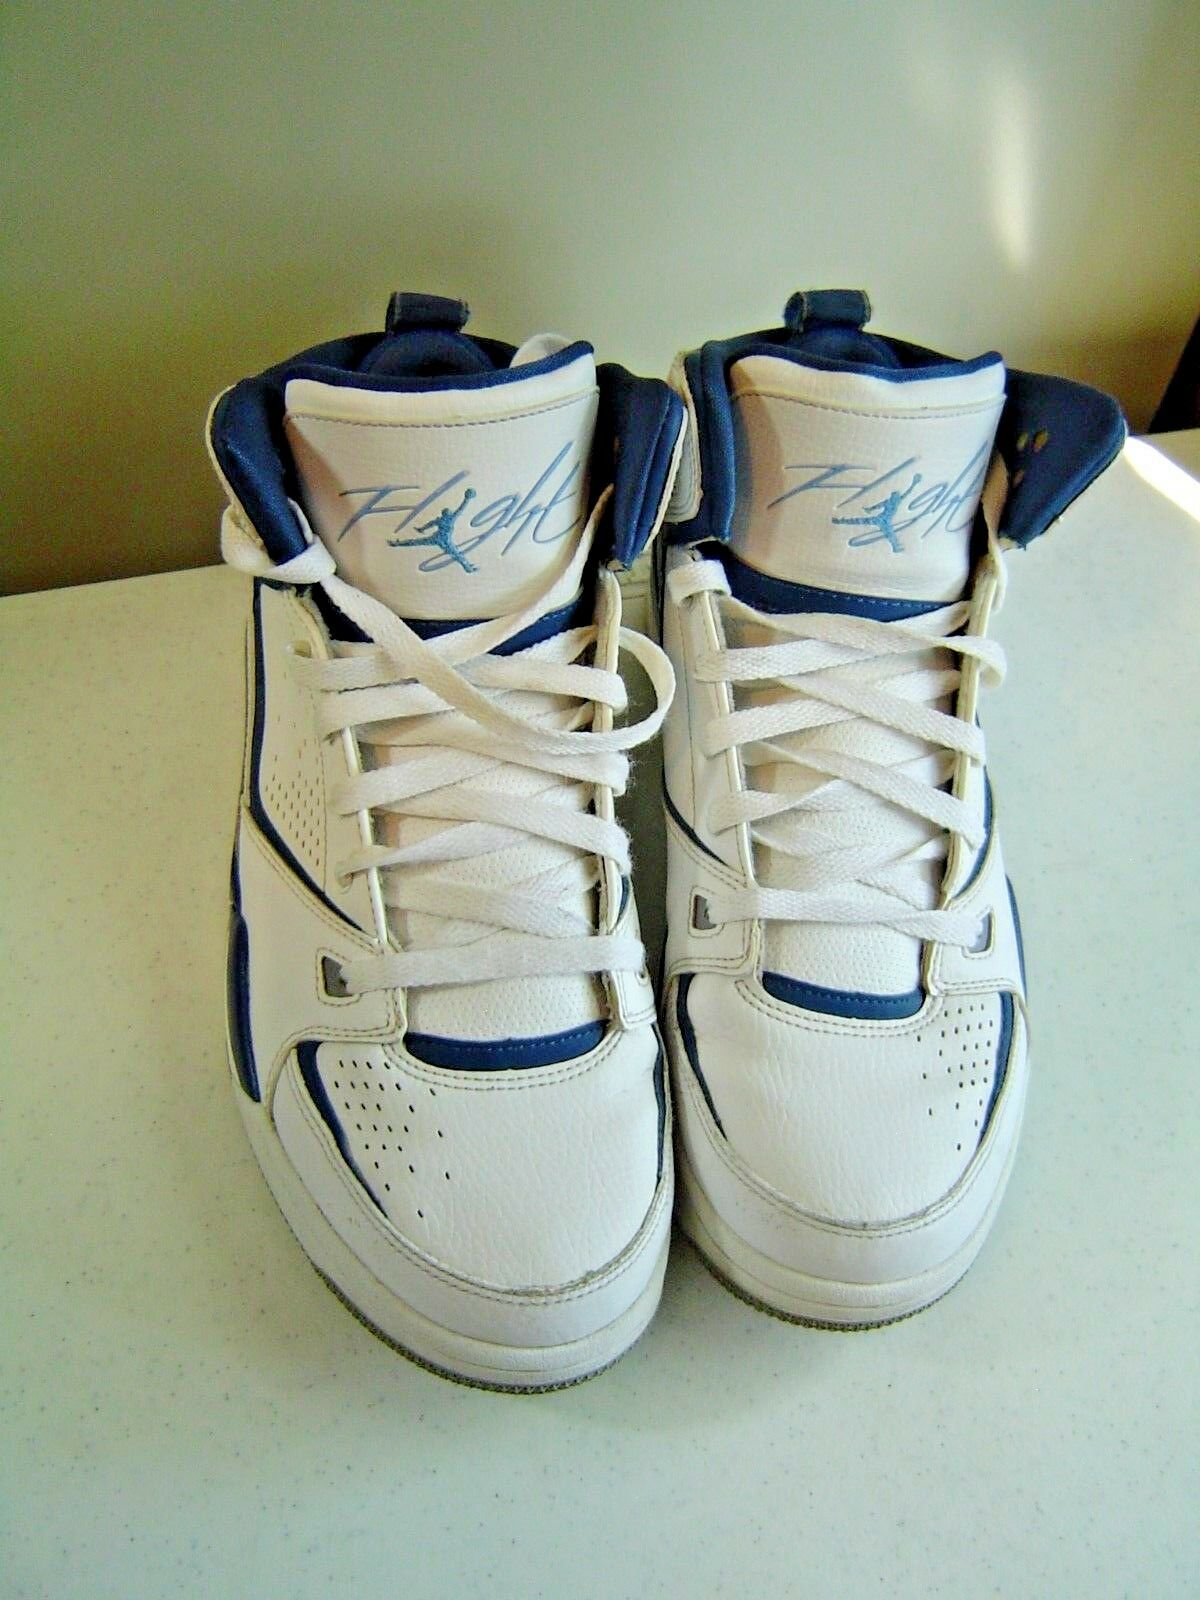 2011 NIKE AIR JORDAN FLIGHT BLUE/WHITE SNEAKERS MEN'S SIZE 10.5 Price reduction Casual wild